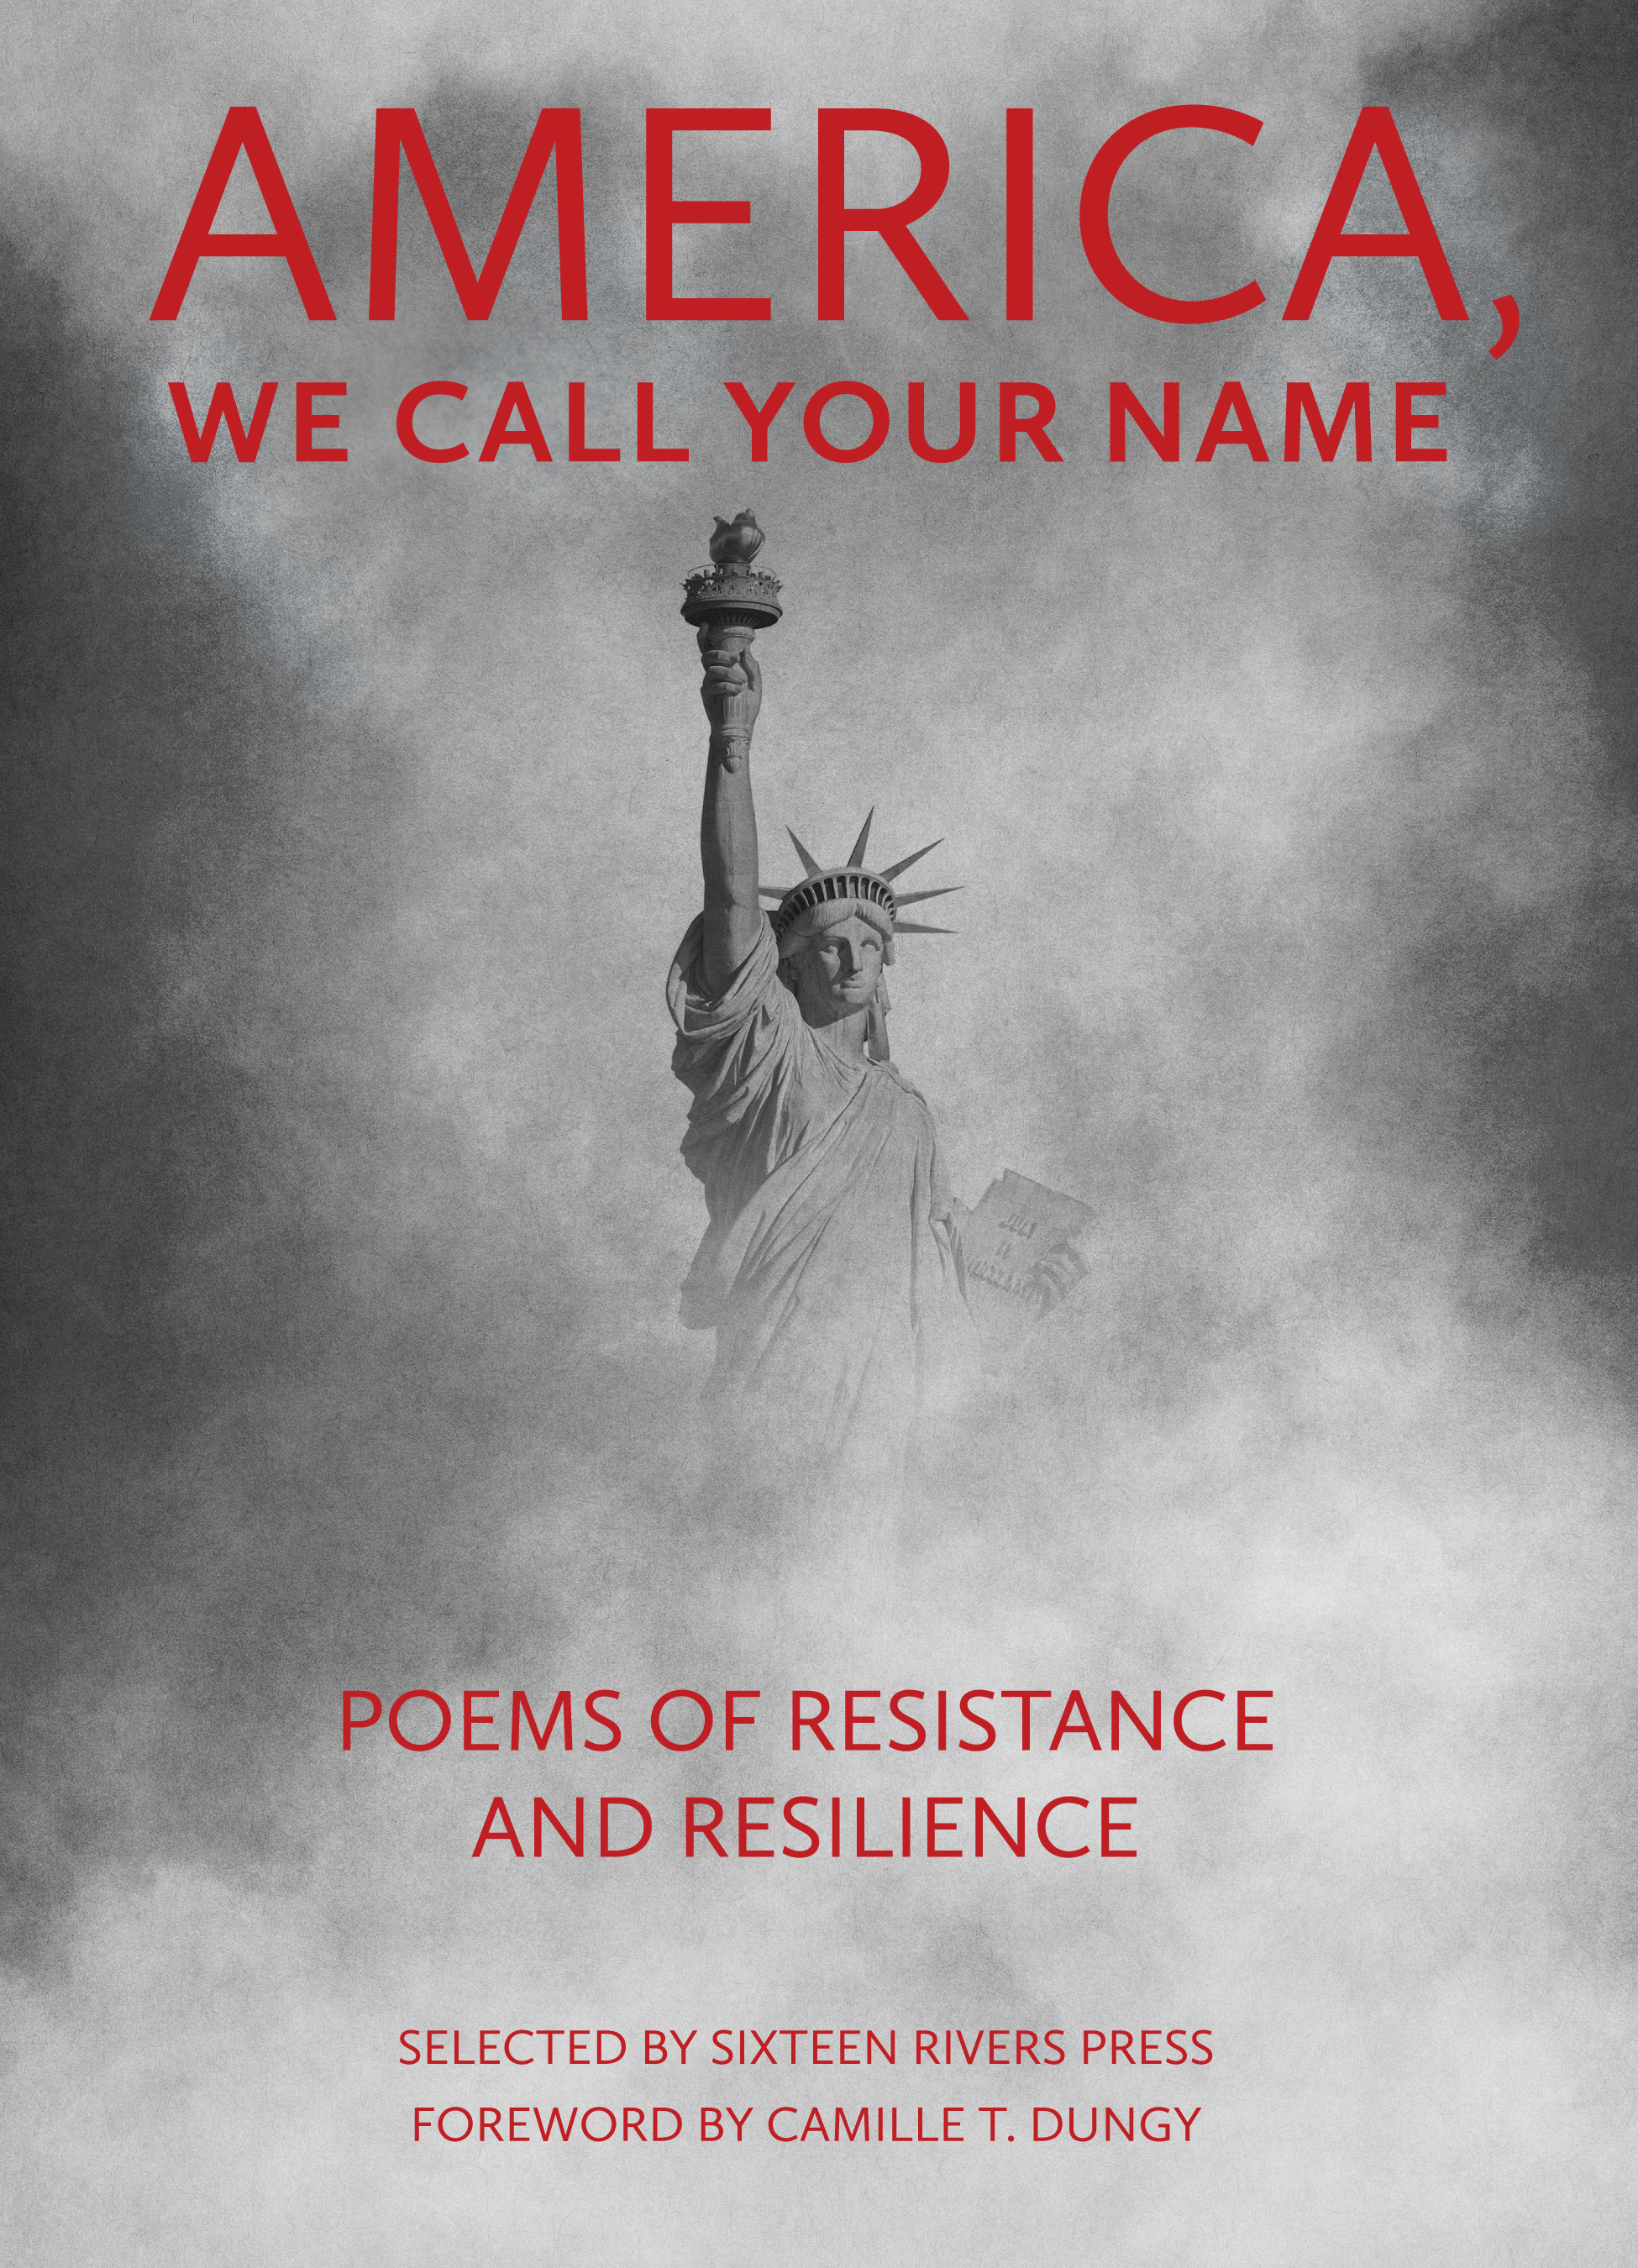 "Honored to have a poem in this new anthology, available Sept. 4!   - This anthology, born in response to the 2016 Presidential election, combines the voices of poets from across America—from red states and blue states, high schools and nursing homes, big cities and small towns—with the voices of poets from other countries and other times. From Virgil and Dante to Claudia Rankine and Mai Der Vang, from Milton to Merwin, from Po-Chü-i to Robin Coste Lewis, these voices—now raucous, now muted, now lyric, now plain—join together here in dissent and in praise, in grief and alarm, in vision and hope. The 126 poems in this book call out to America in resistance to threats to our democracy and in the resilient belief that this fragile, imperfect form of government can and must be preserved. ""These poets have an urgent message to share with you,"" writes Camille T. Dungy in the foreword. ""This message is brand new, and it is also eternal. Read carefully. What you learn here might just save your life.""Click to order via Amazon"